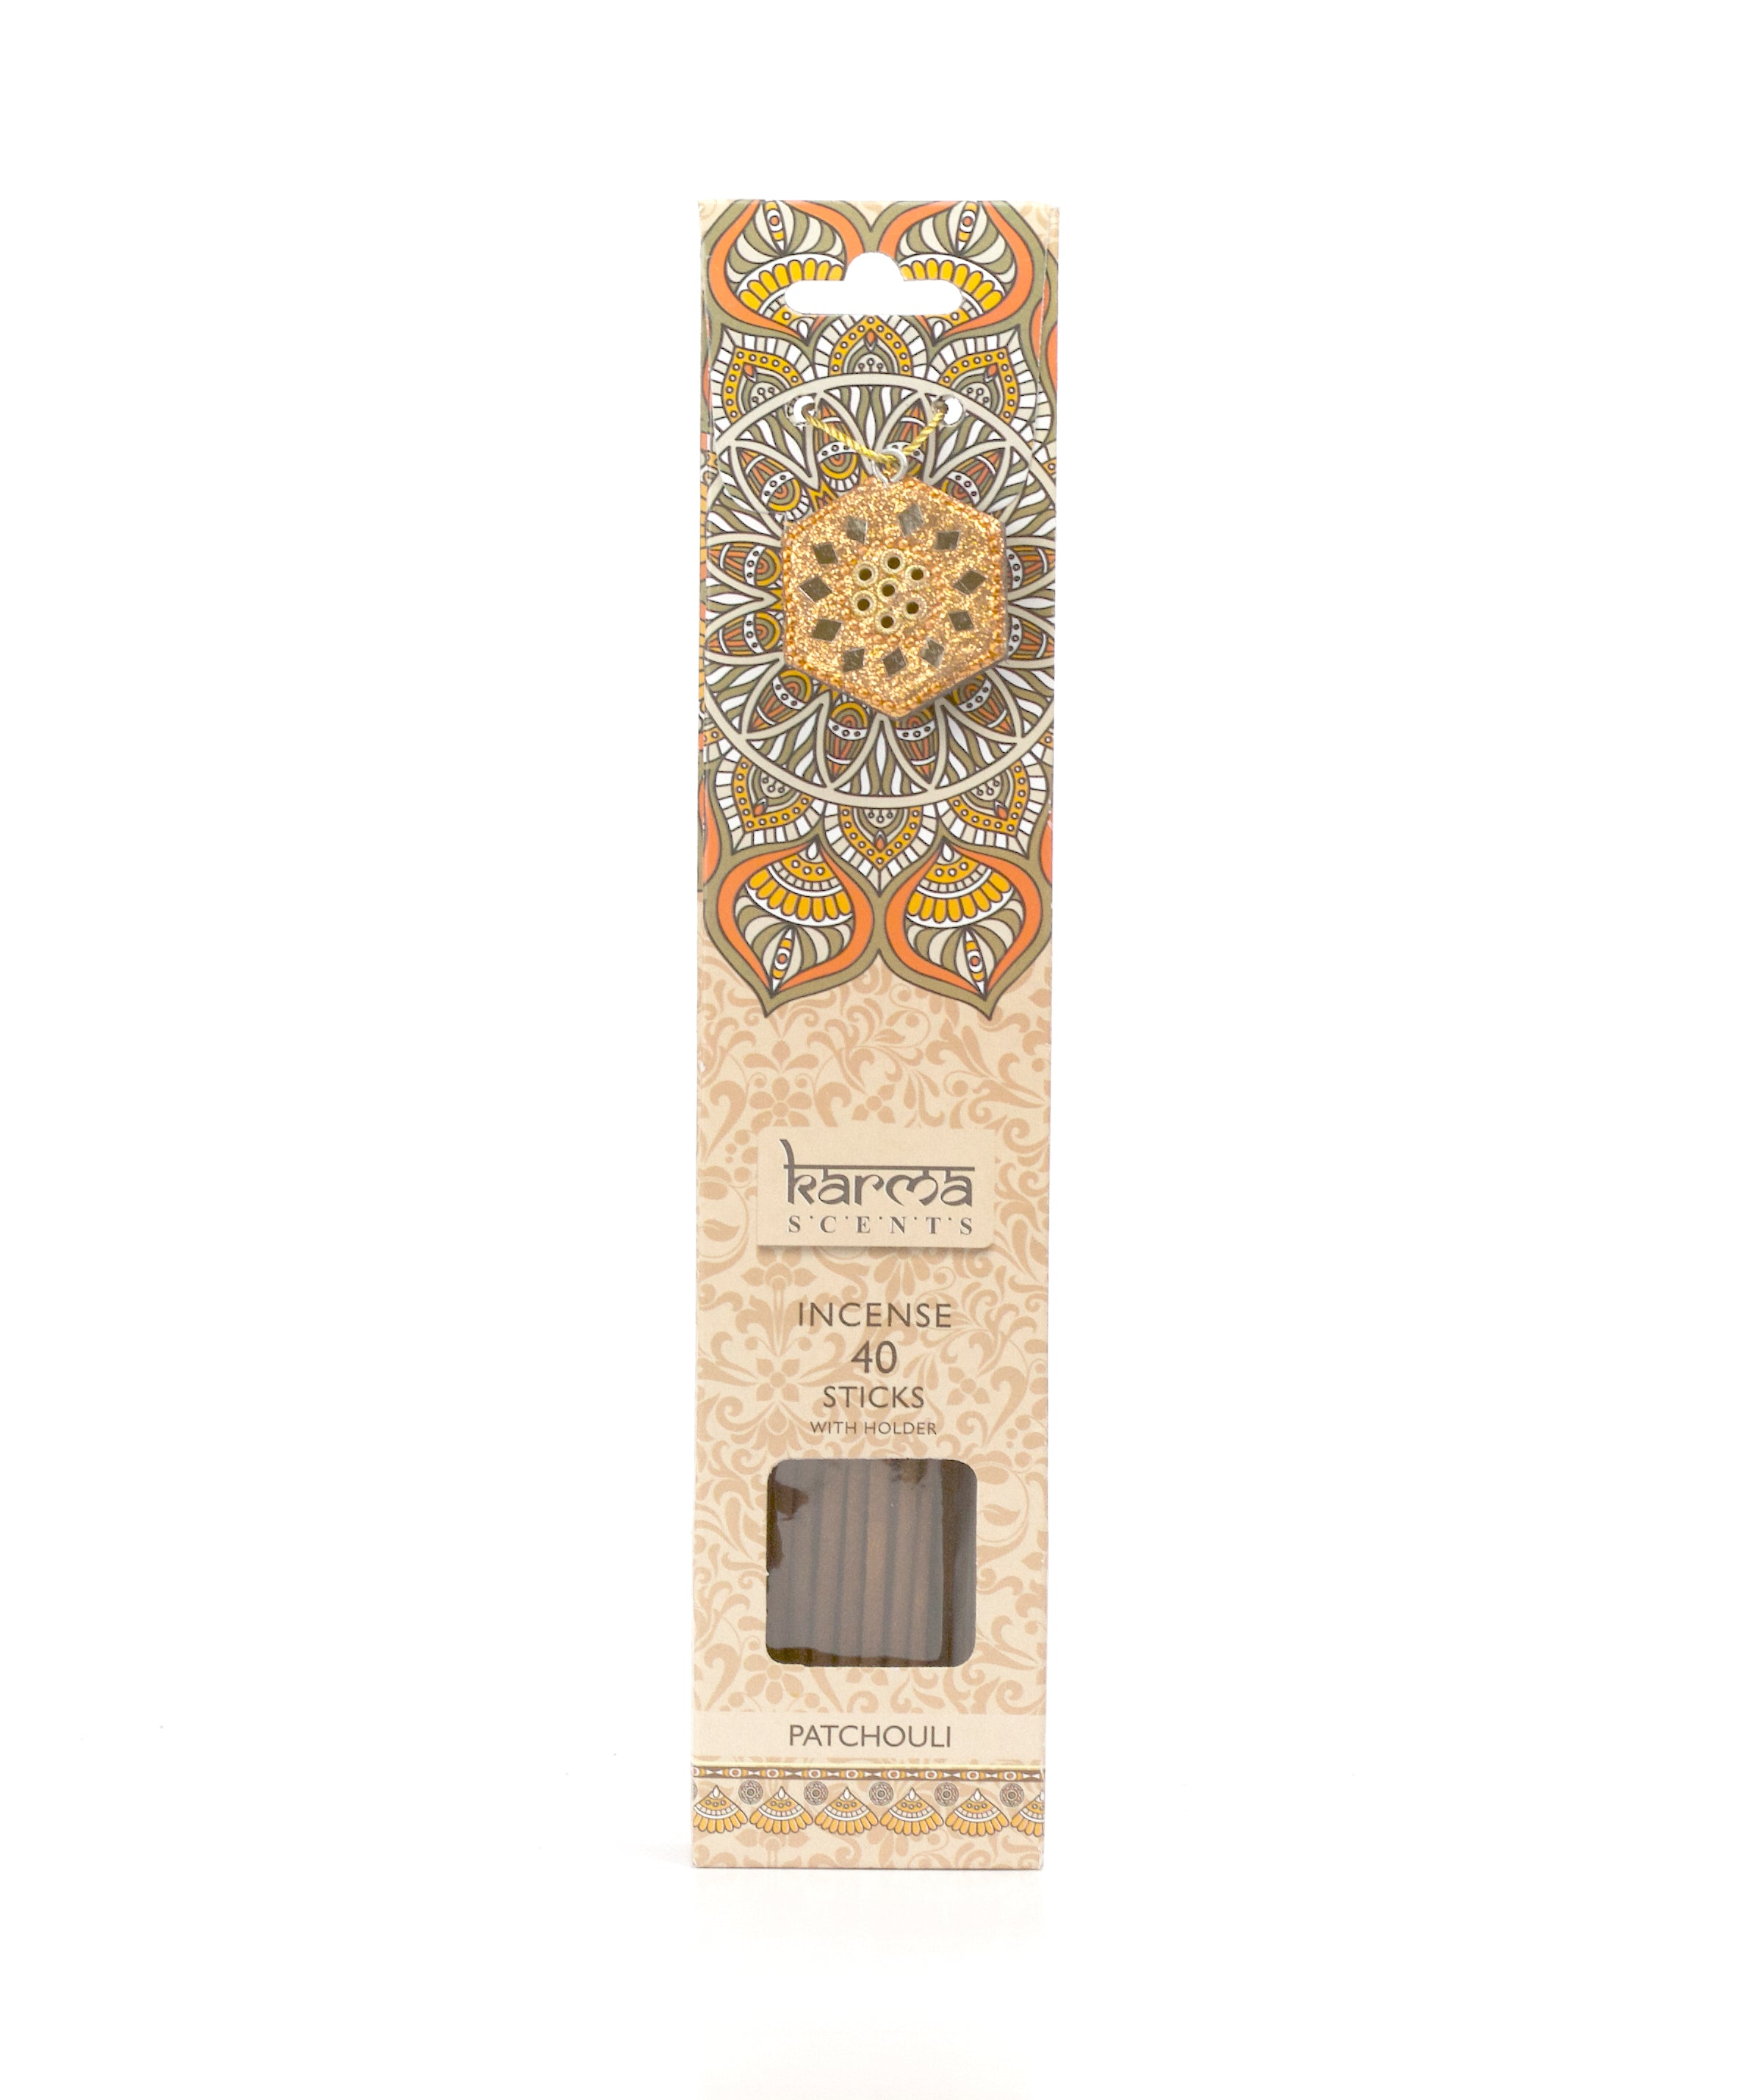 Patchouli Karma Incence Sticks and Holder Pack of 40